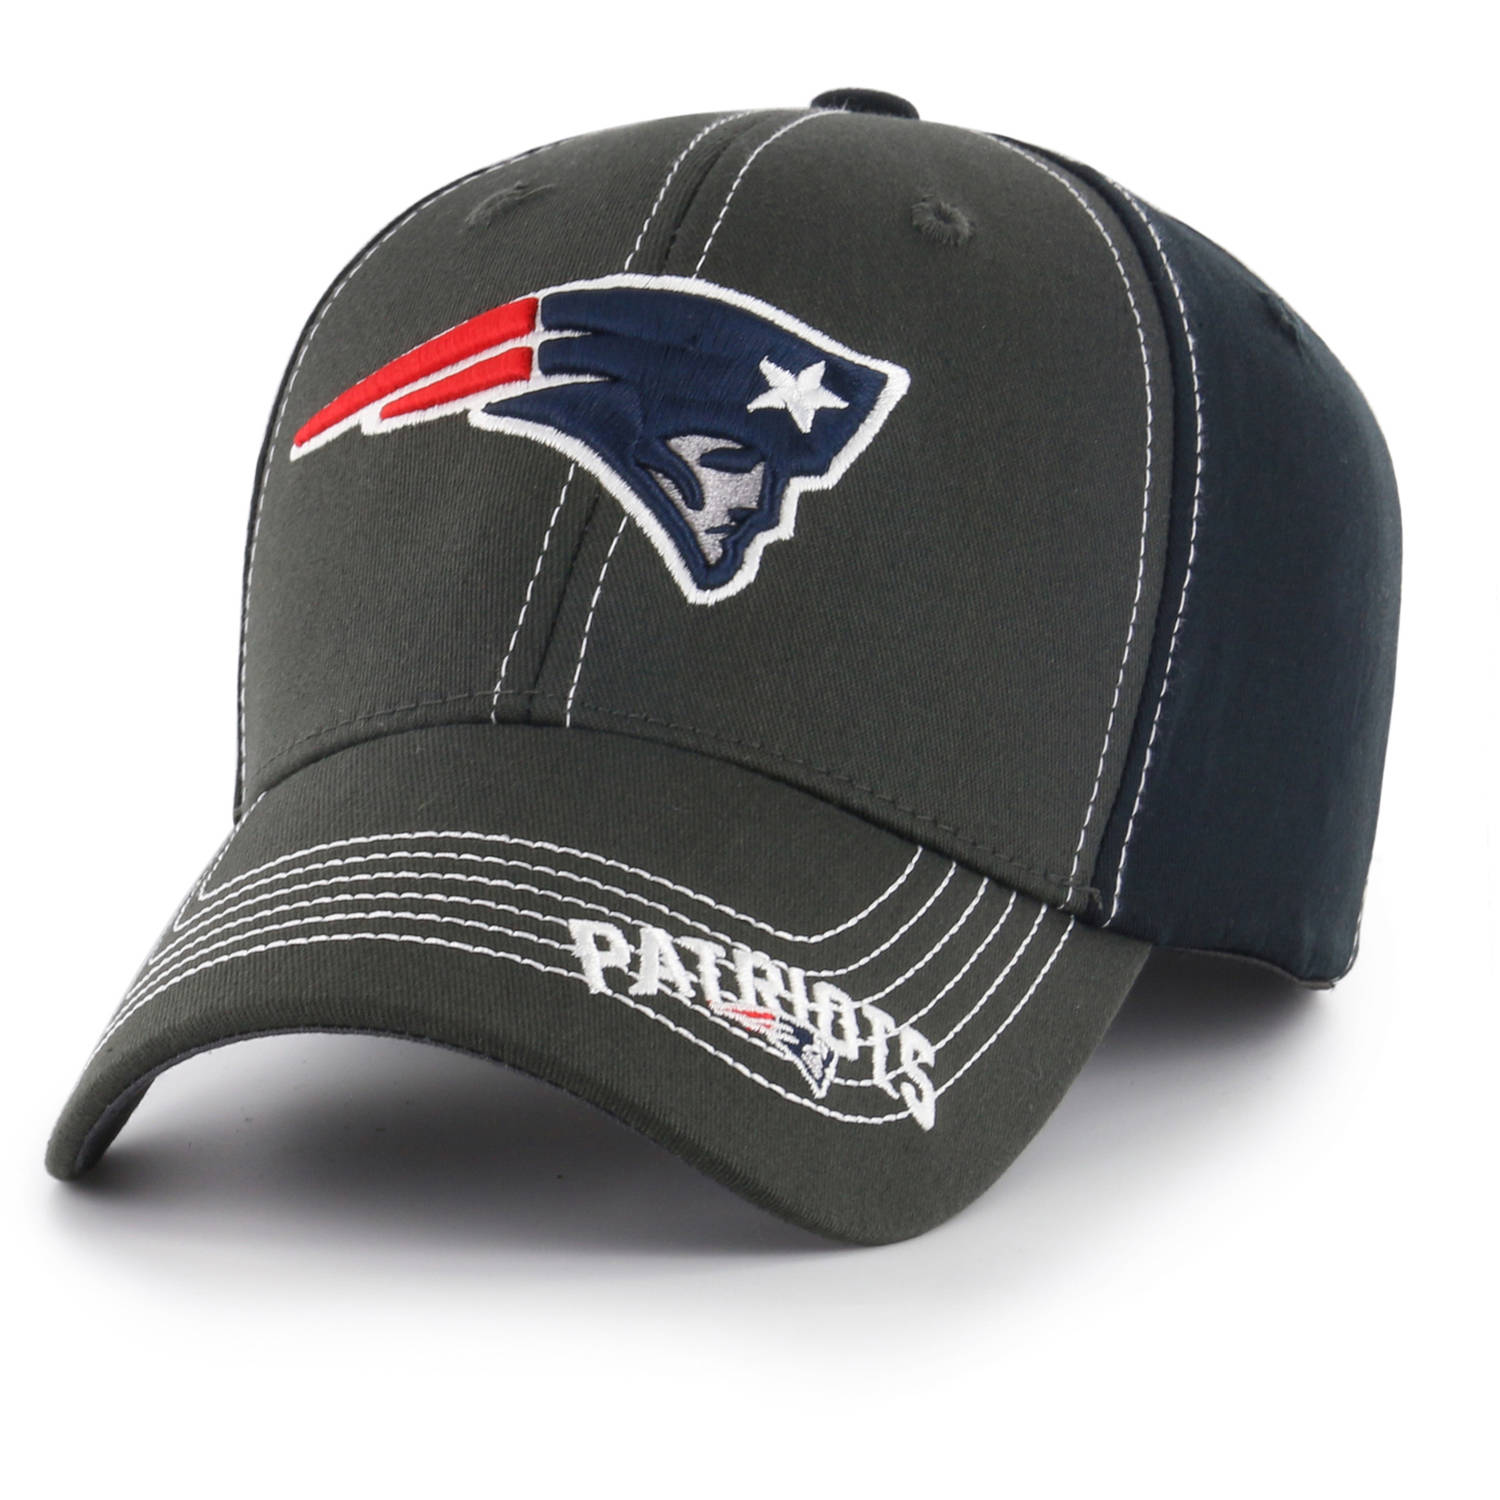 NFL New England Patriots Cornerback Cap / Hat by Fan Favorite